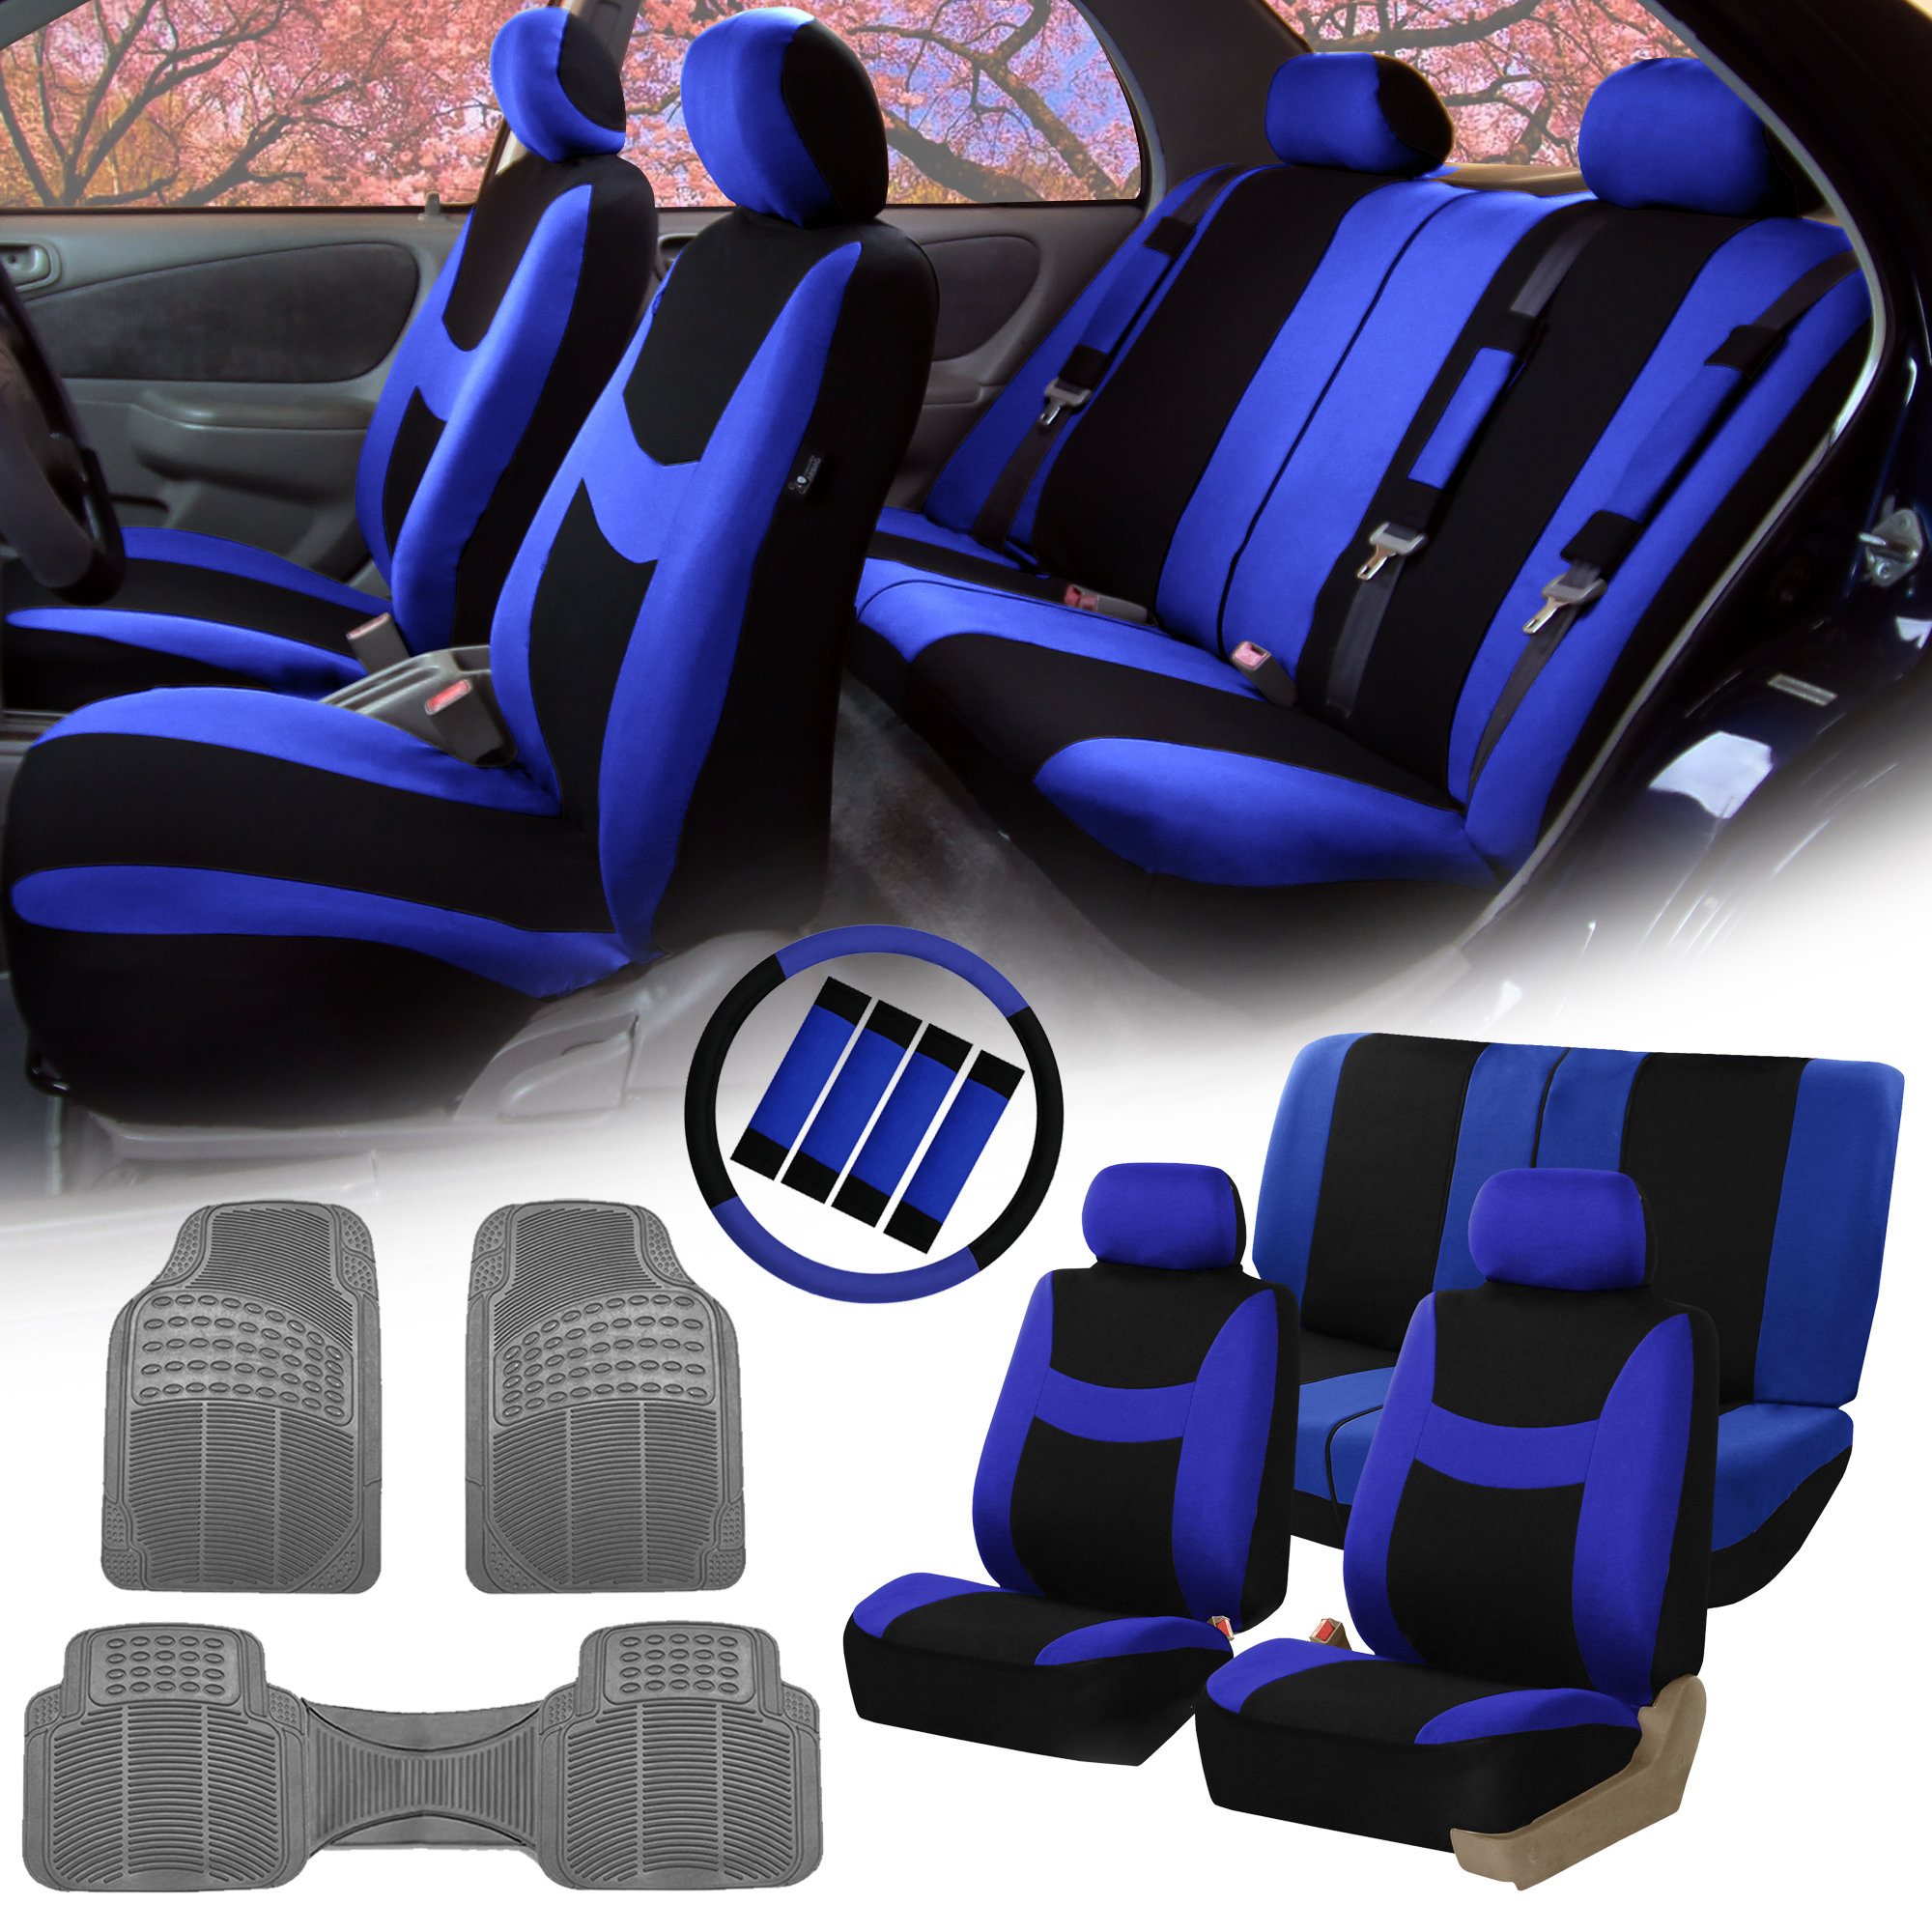 Blue Black Car Seat Covers For Auto W Steering Cover Belt